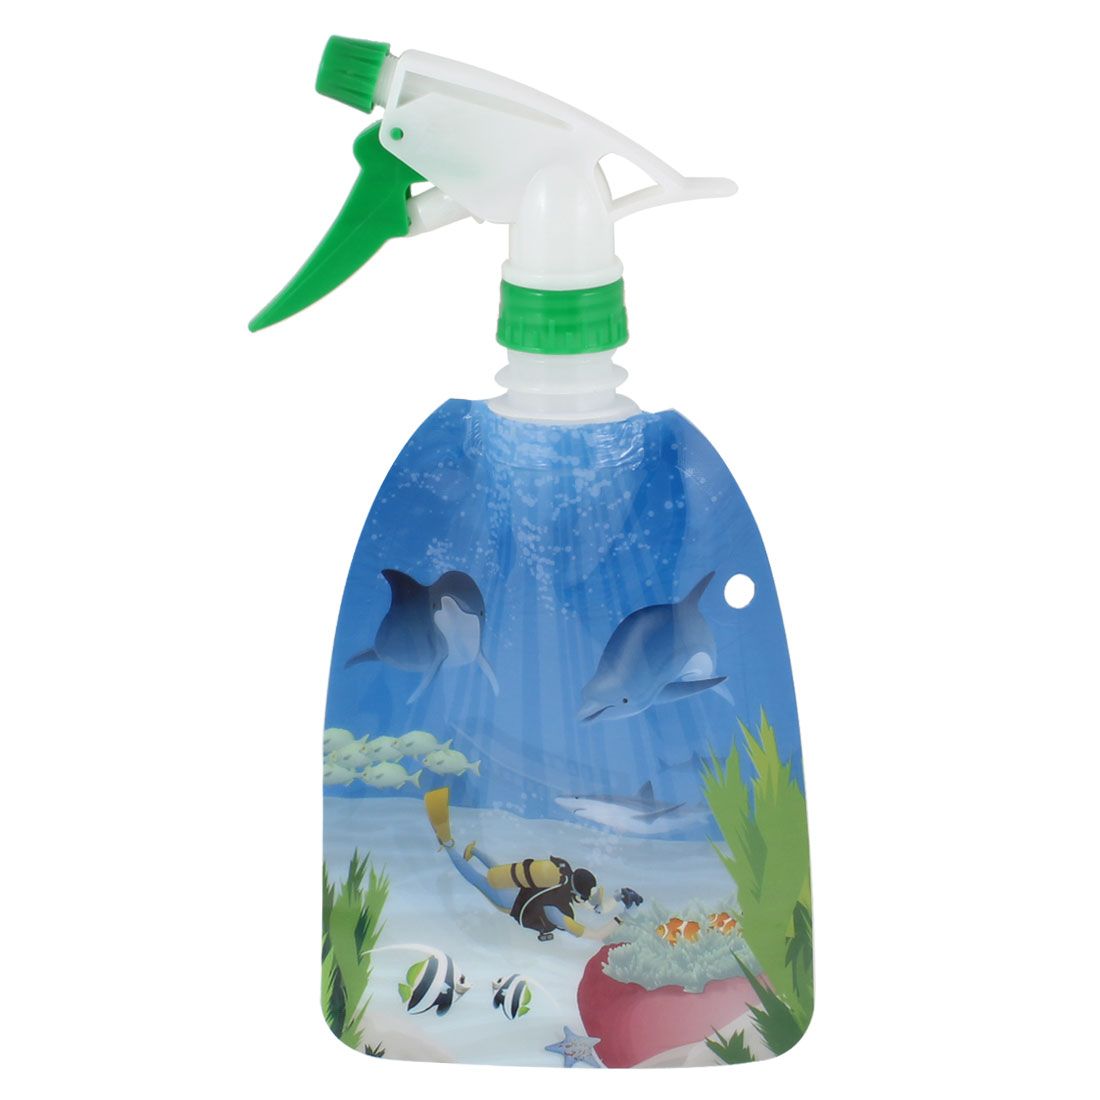 Coral Dolphins Print Plastic Refillable Hairdress Bottle 300ml Blue Green